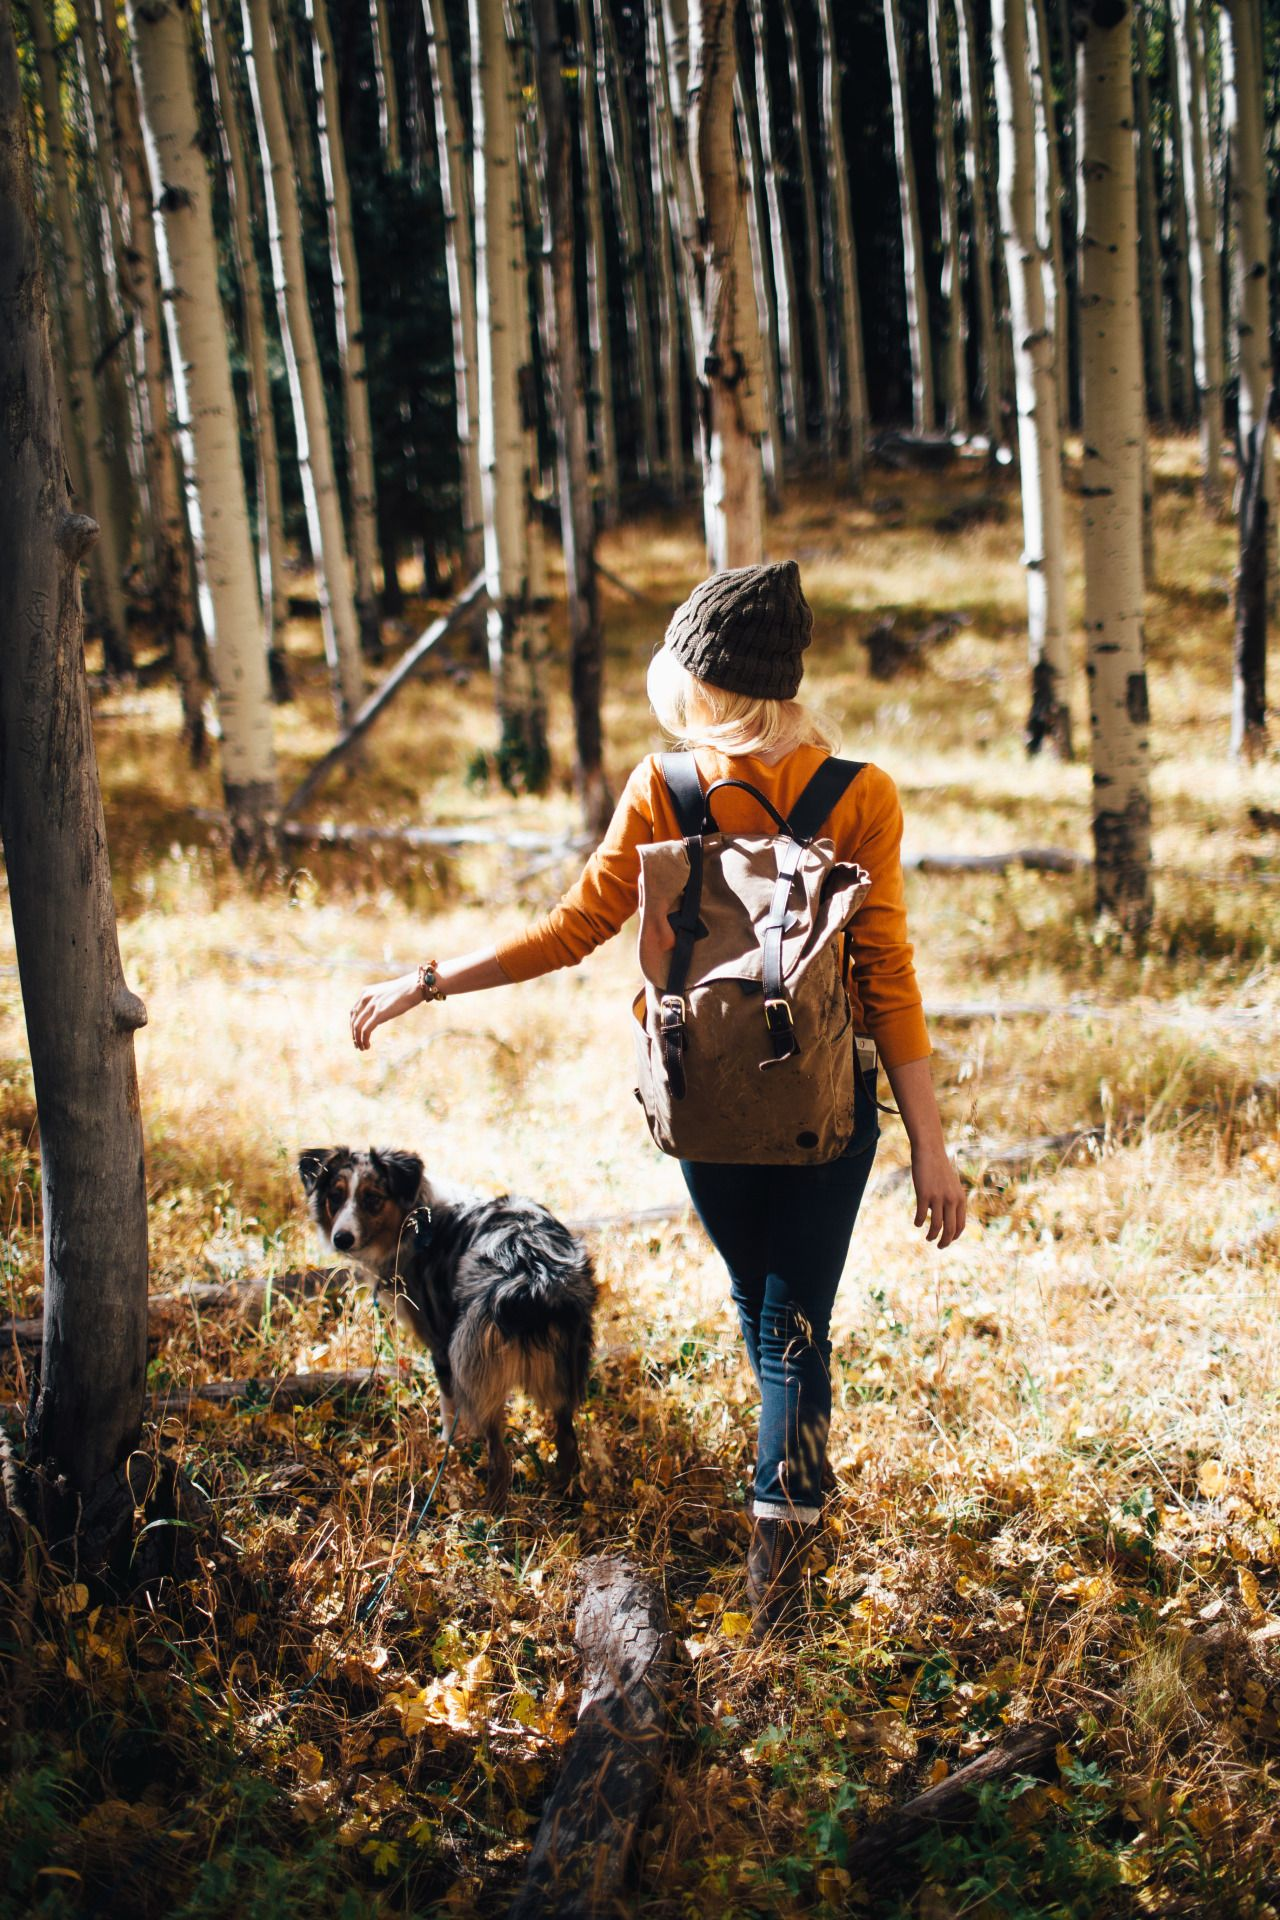 Walking my dog is not only relaxing as we go to nice wooded areas, but also provides me with the chance to so exercise and explore new areas.